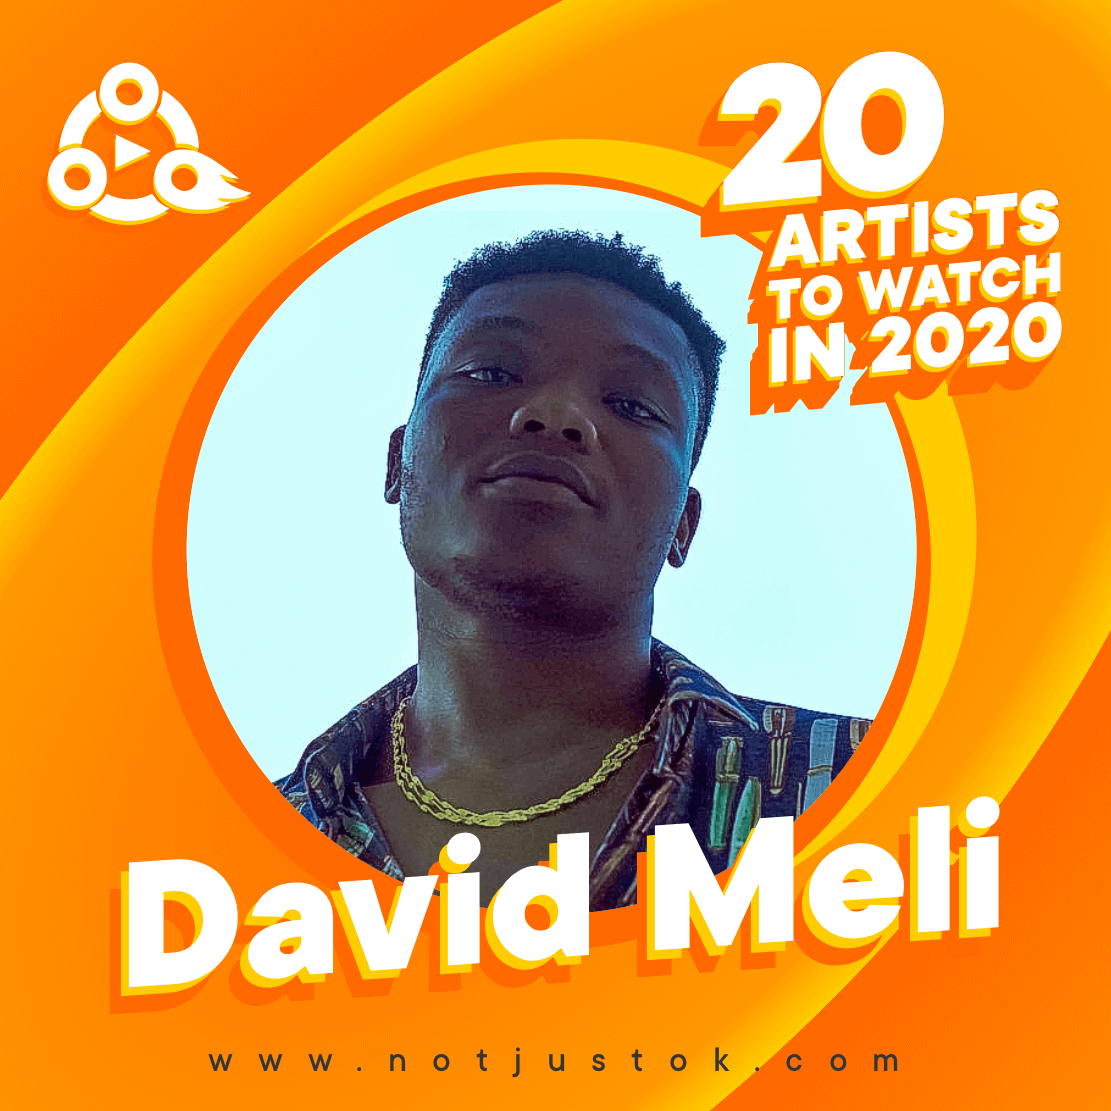 The 20 Artistes To Watch In 2020 - David Meli